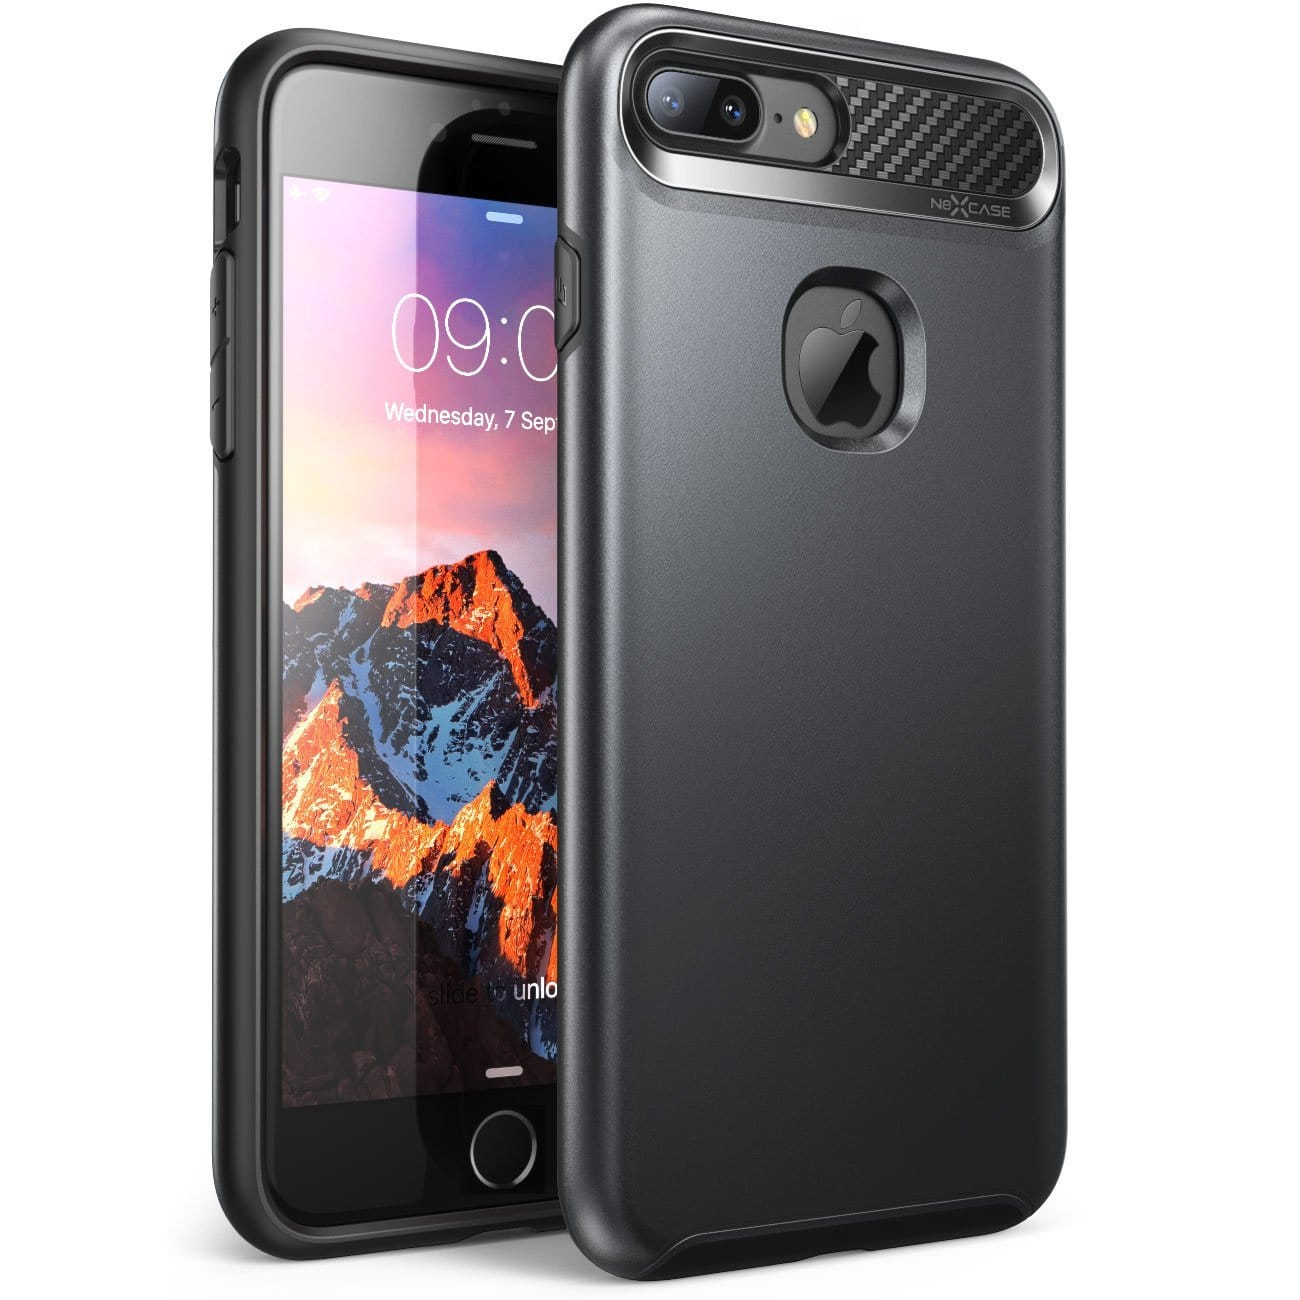 NexCase iPhone 7 Plus Case, Armored Hybrid TPU Cover From $3.85 FS w/Prime